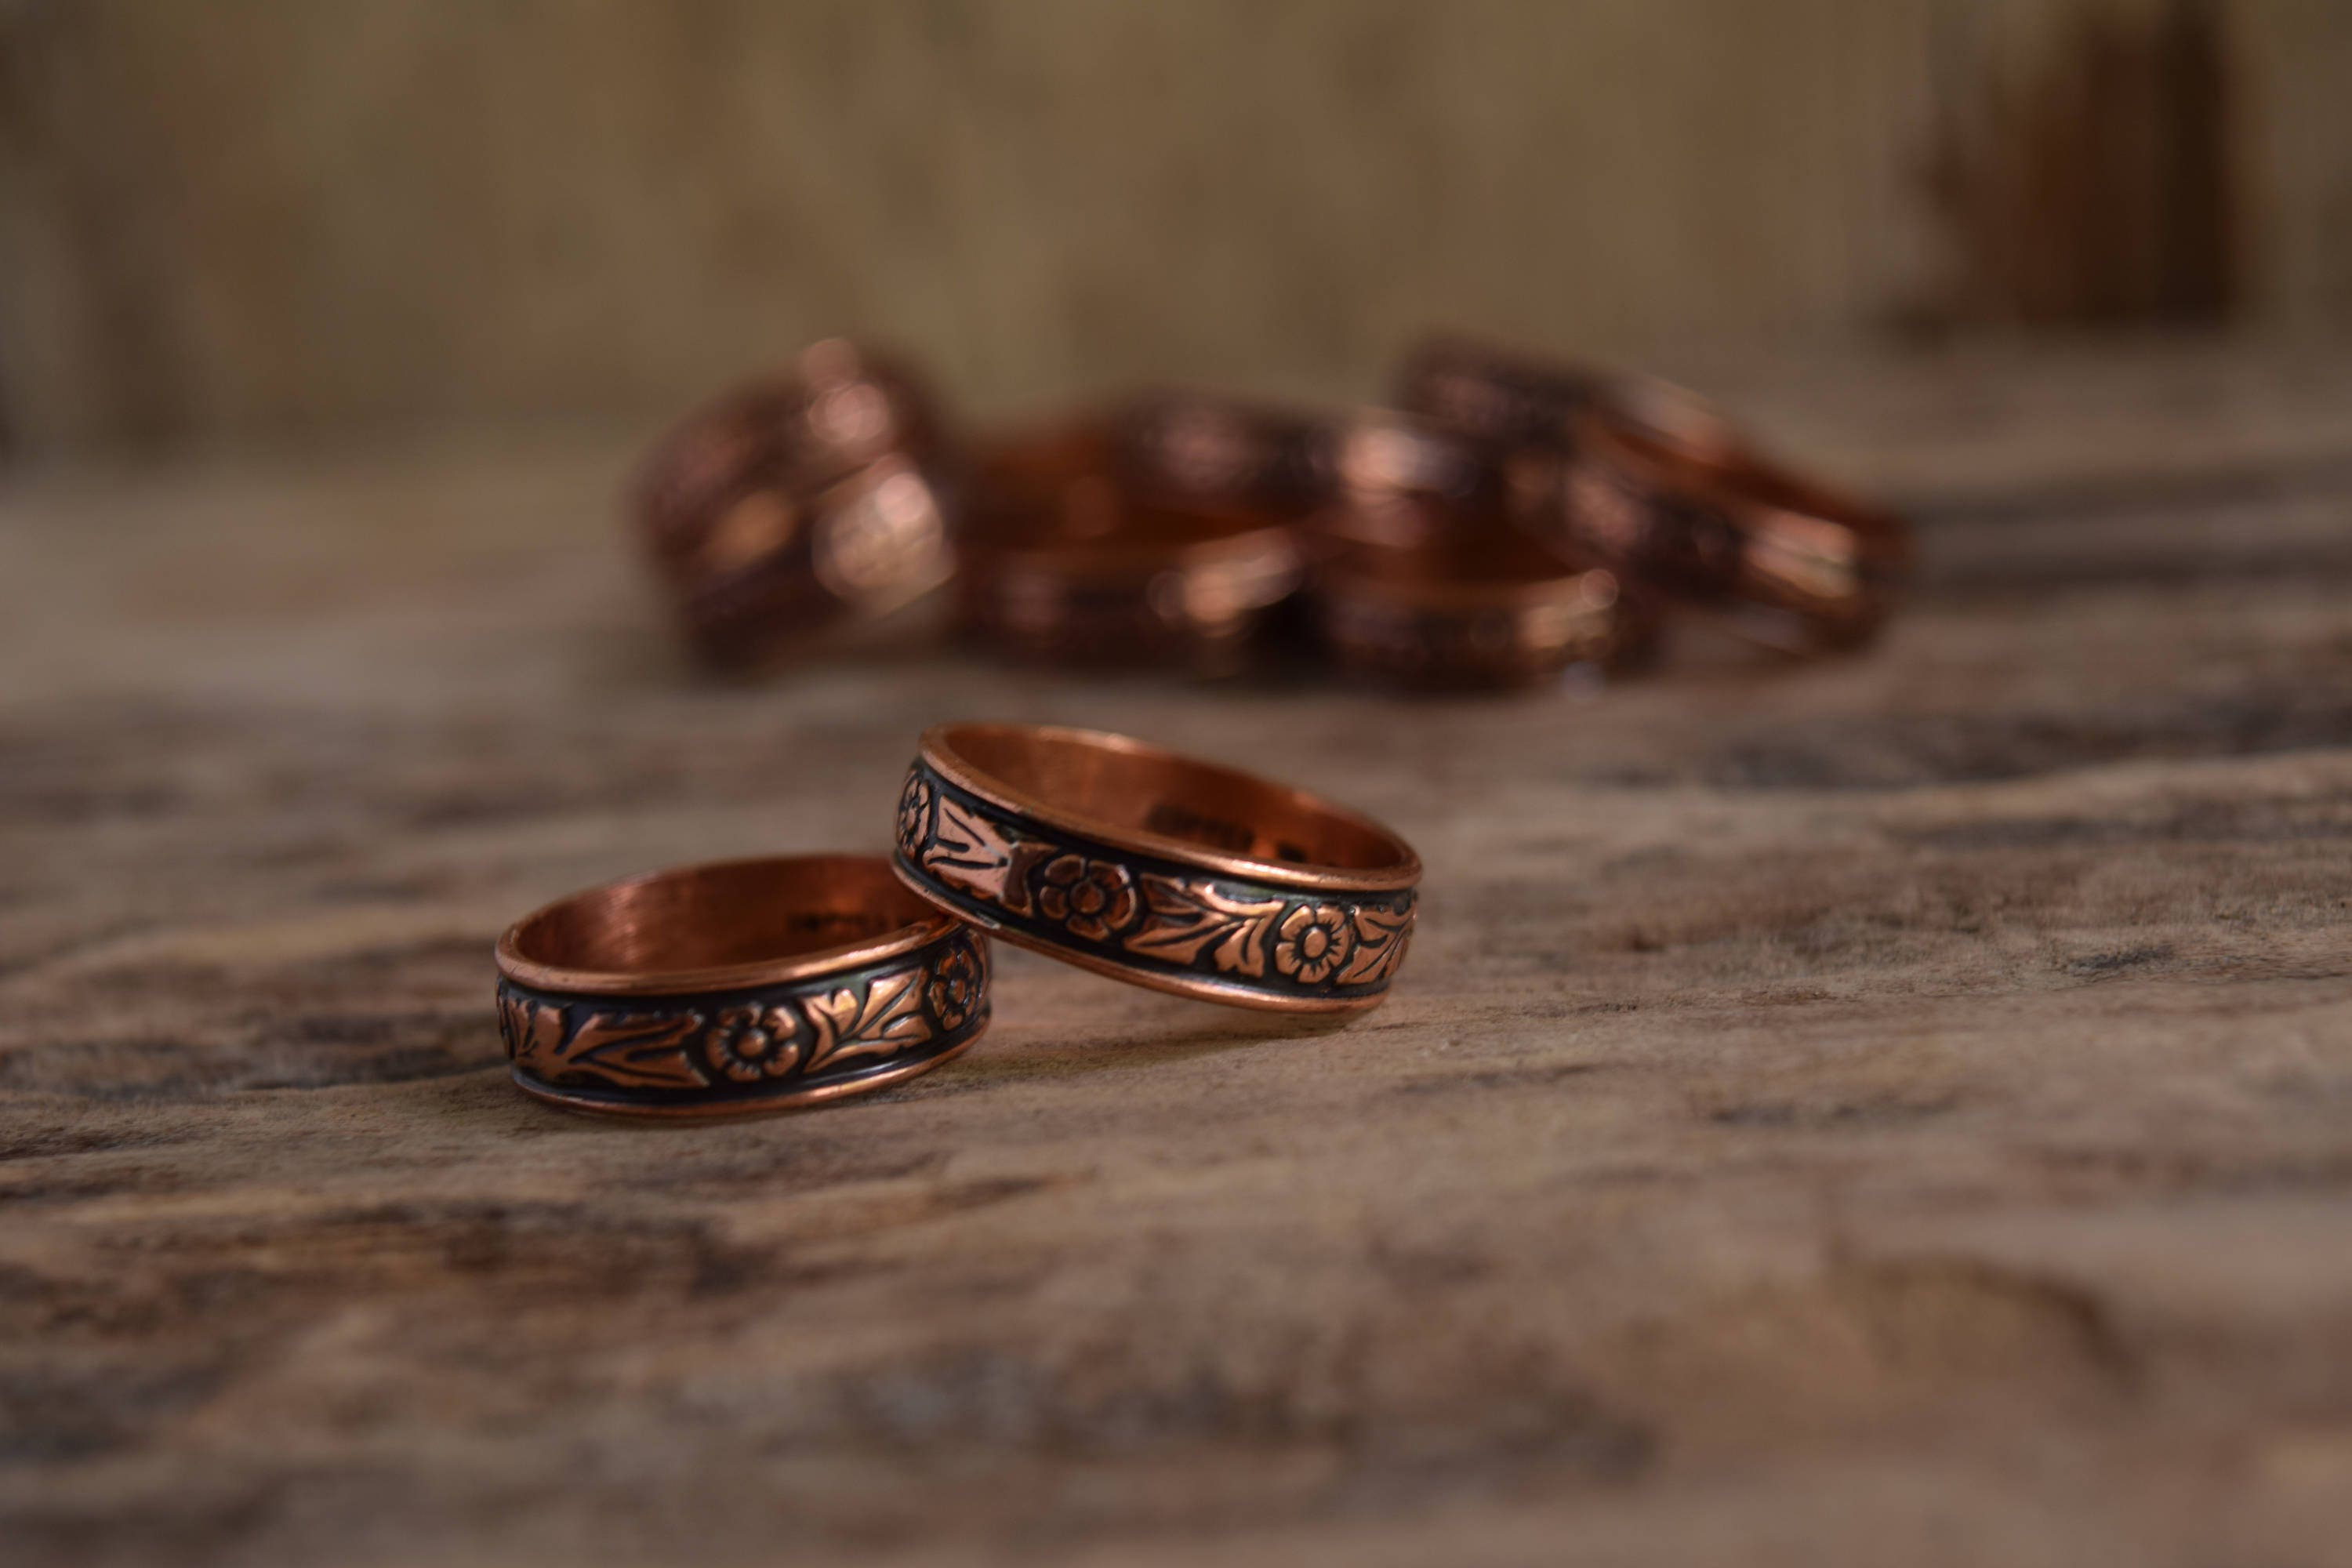 Flower Ring Copper Band Ring vintage copper ring floral